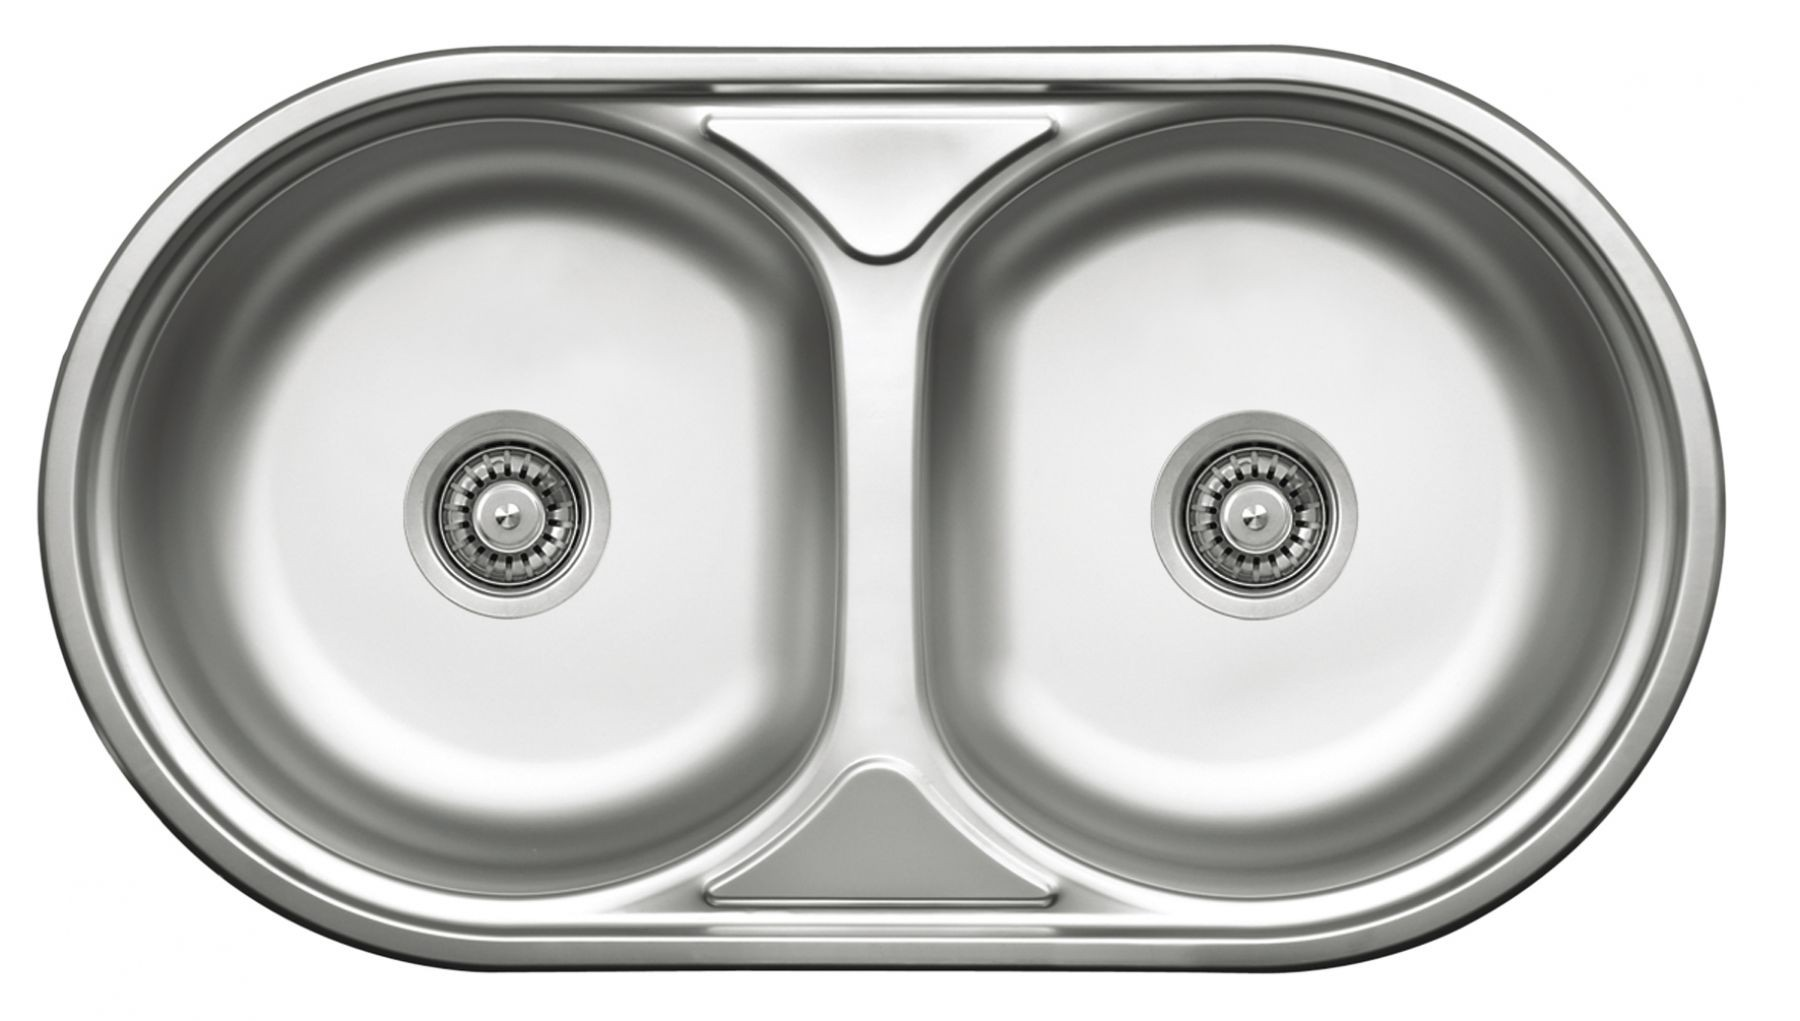 Deante Duet Round Double Bowl Sink Without Drainer